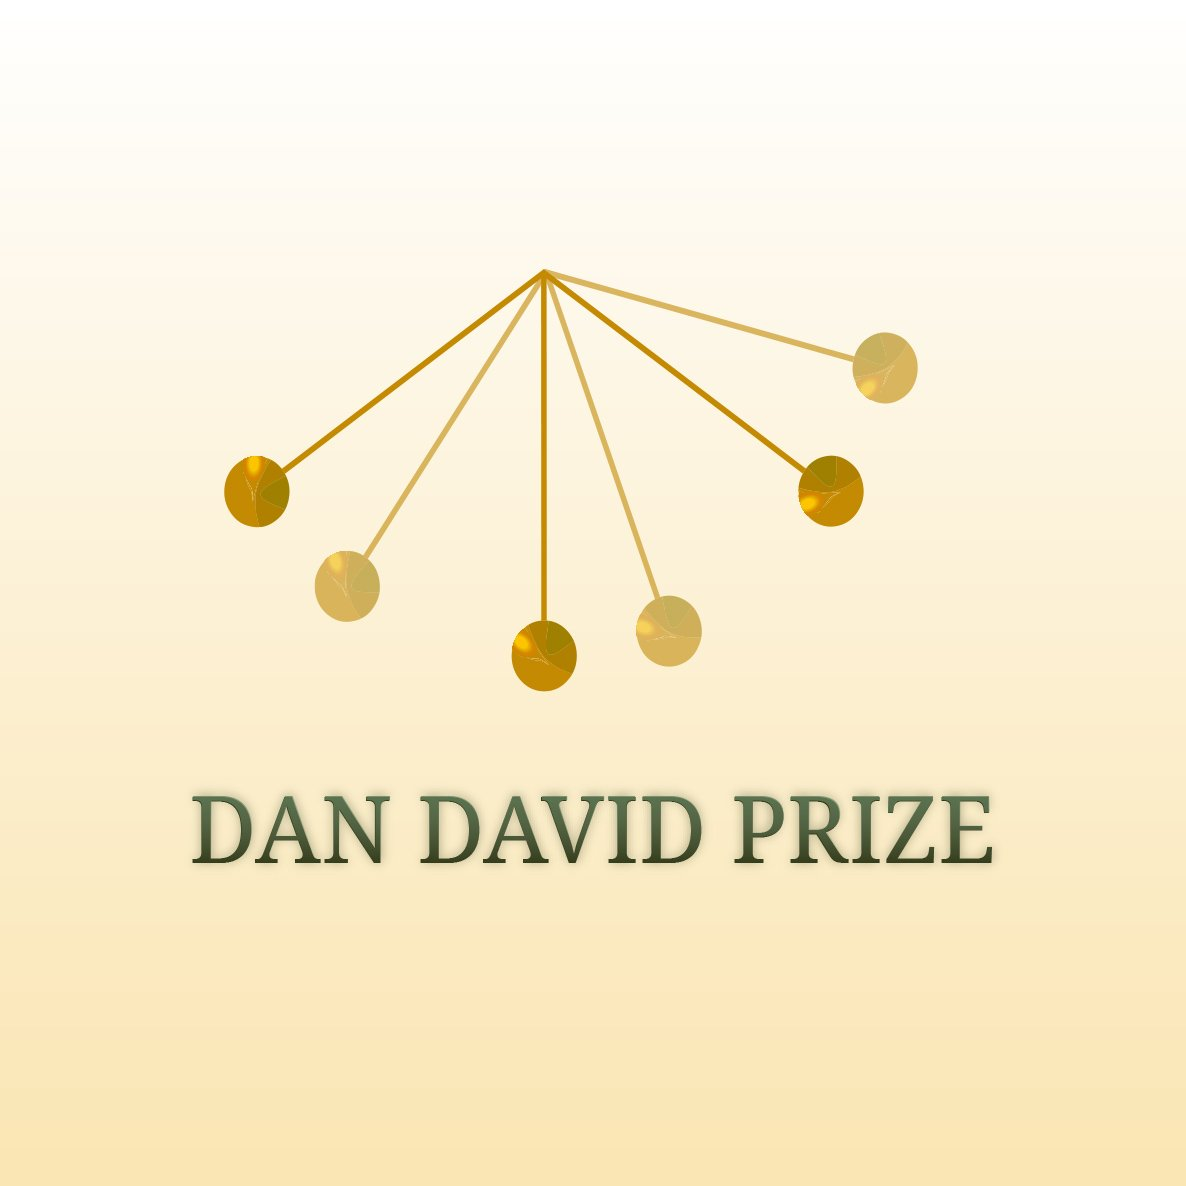 Dan David Prize Awards Scholarships